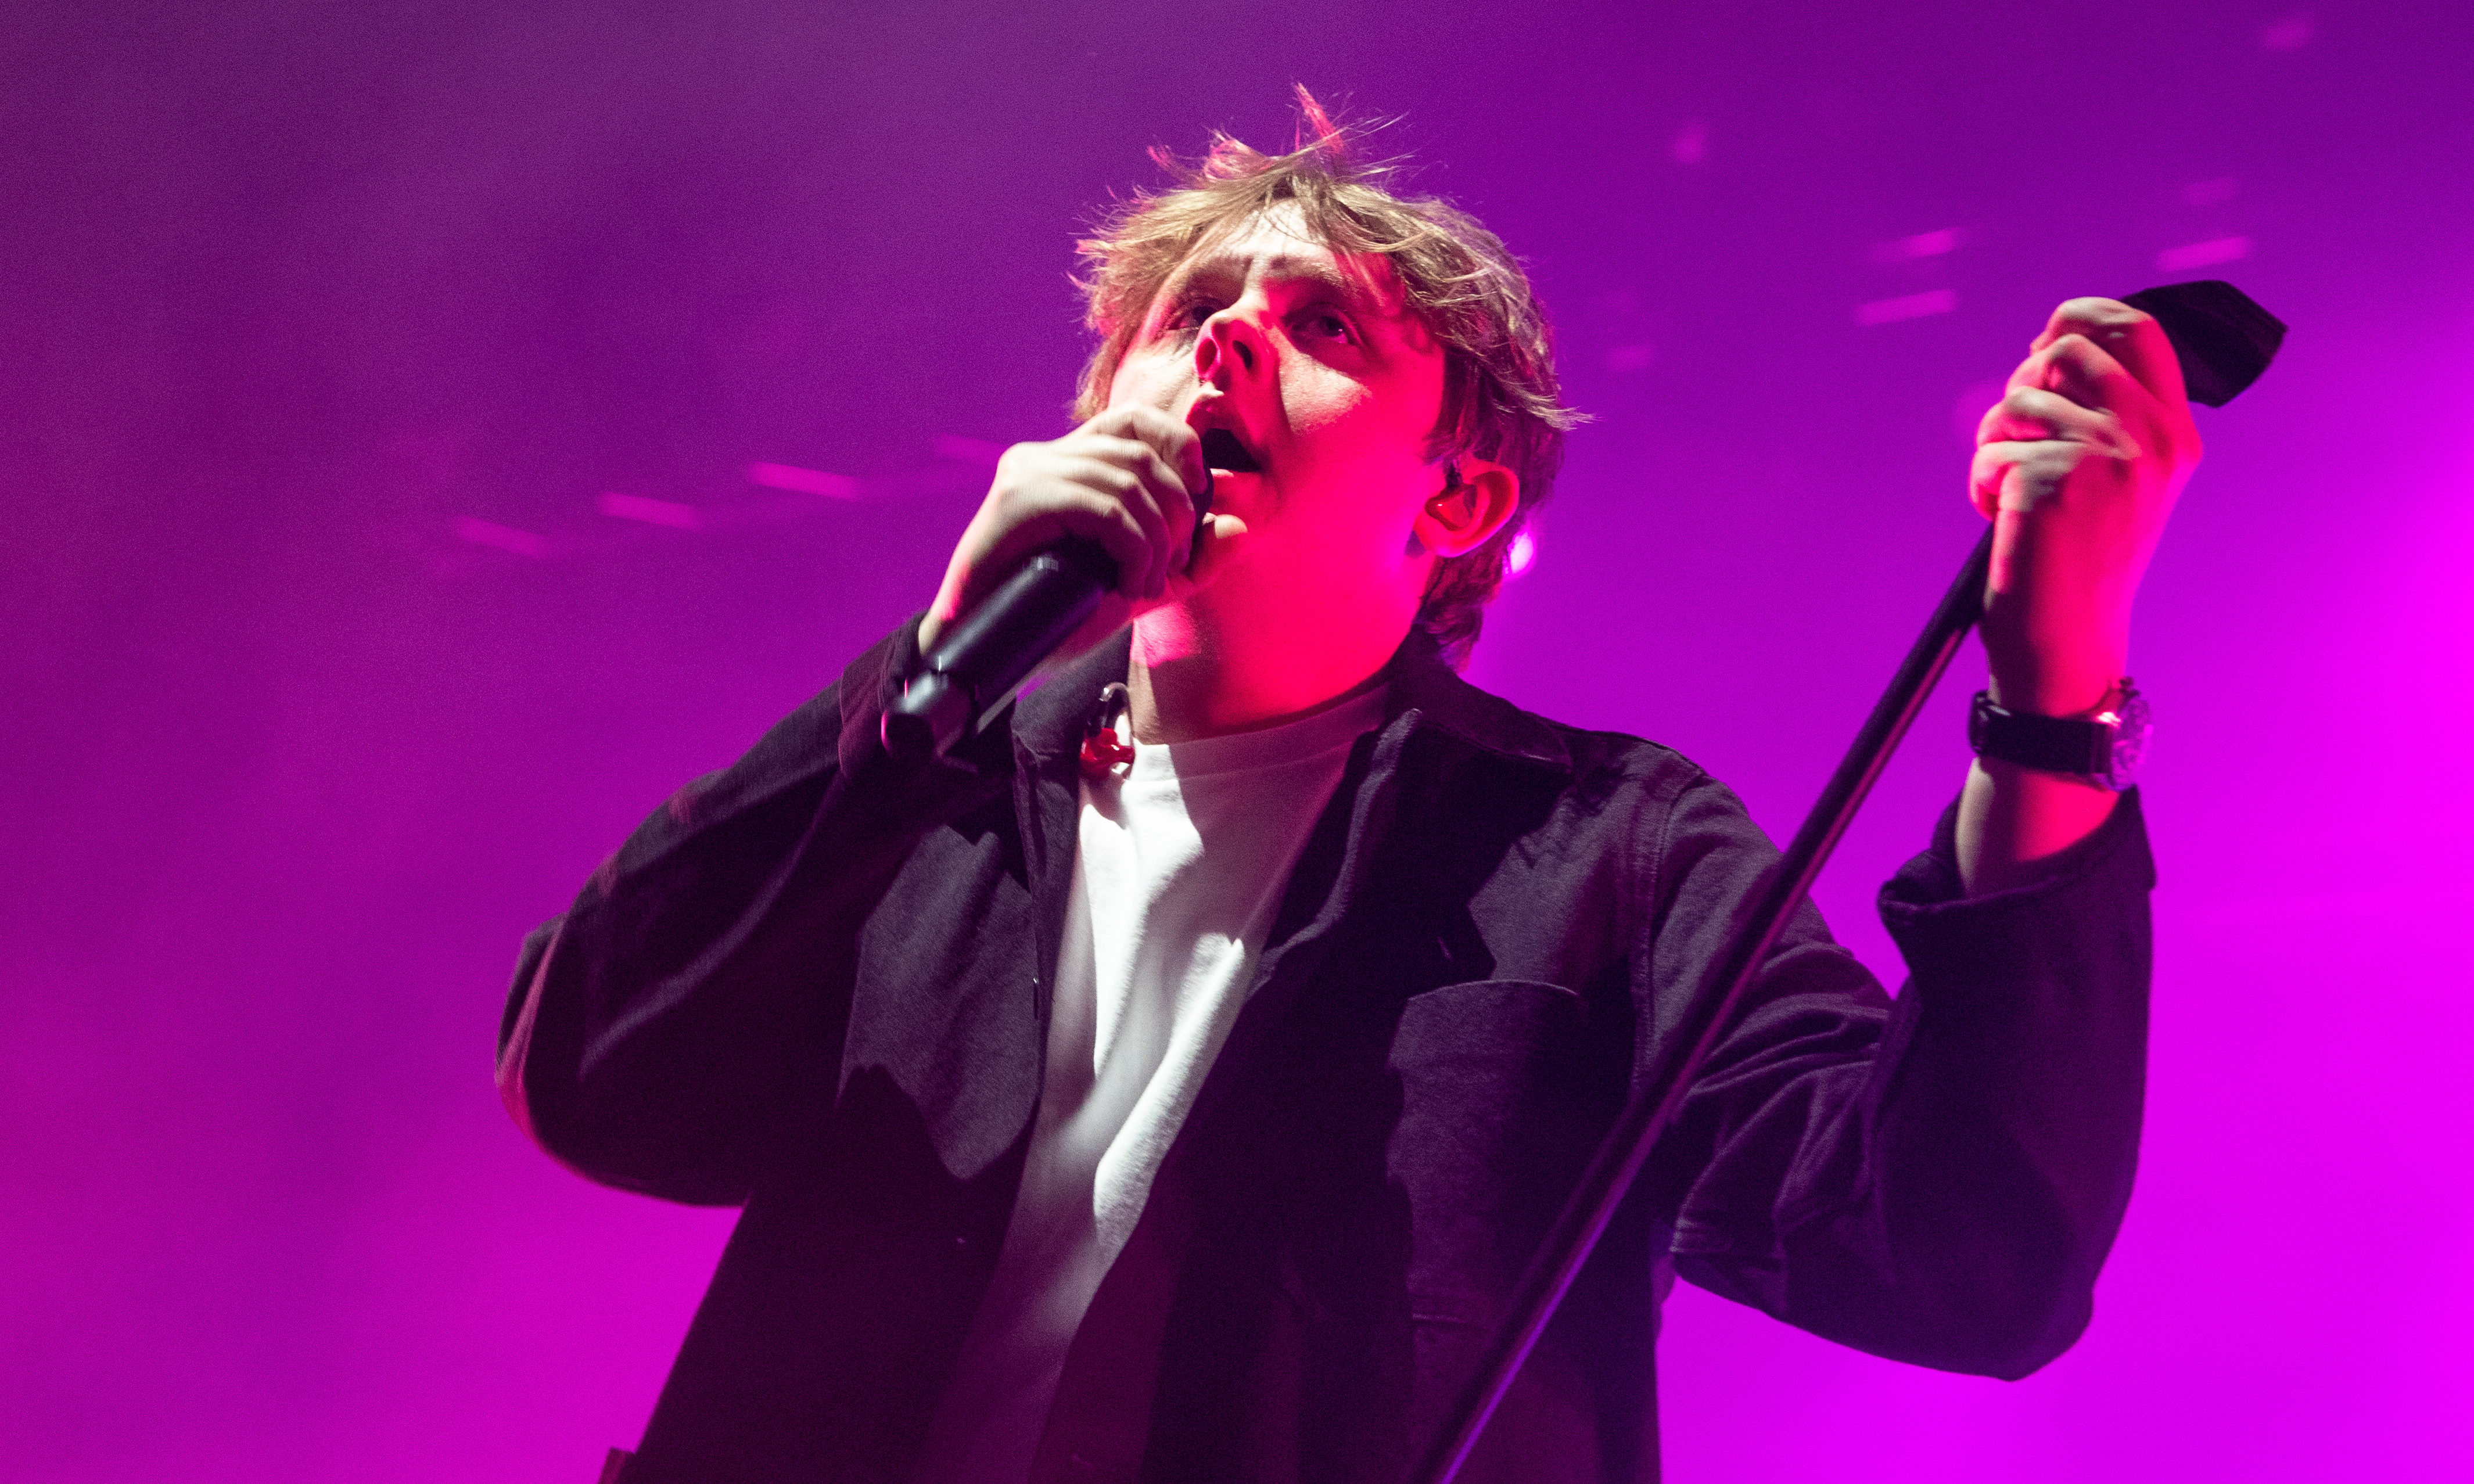 Lewis Capaldi, performing at the 2019 Perth Festival of the Arts